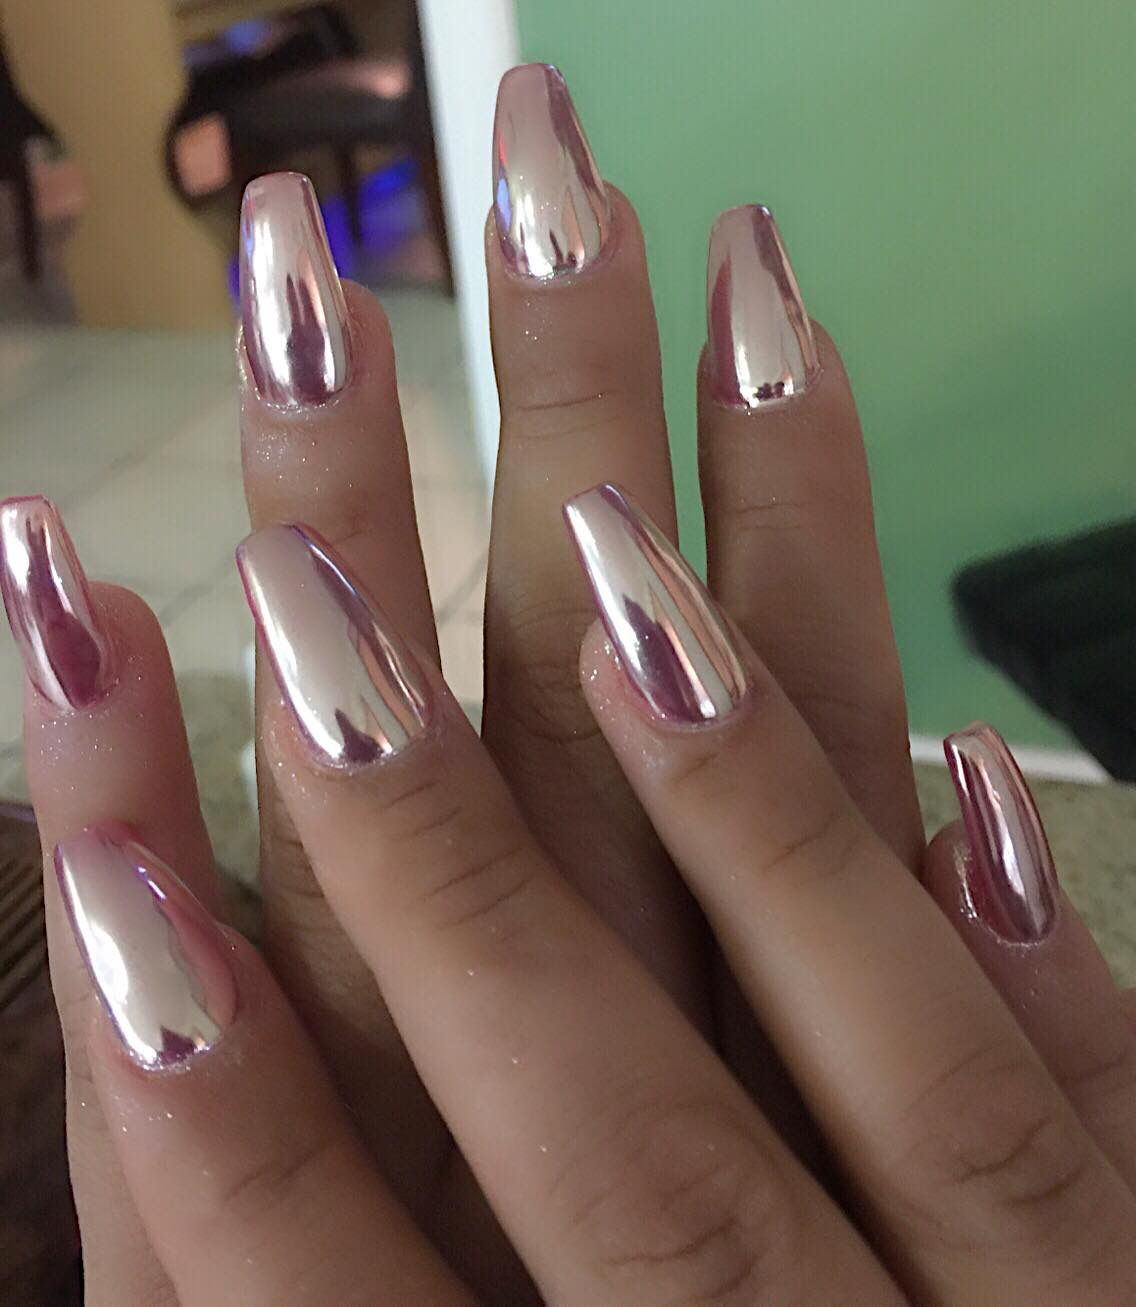 Platinum Rose Want To Find Where I Can Get This Polish Gelove Nehty Design Nehtu Nehty